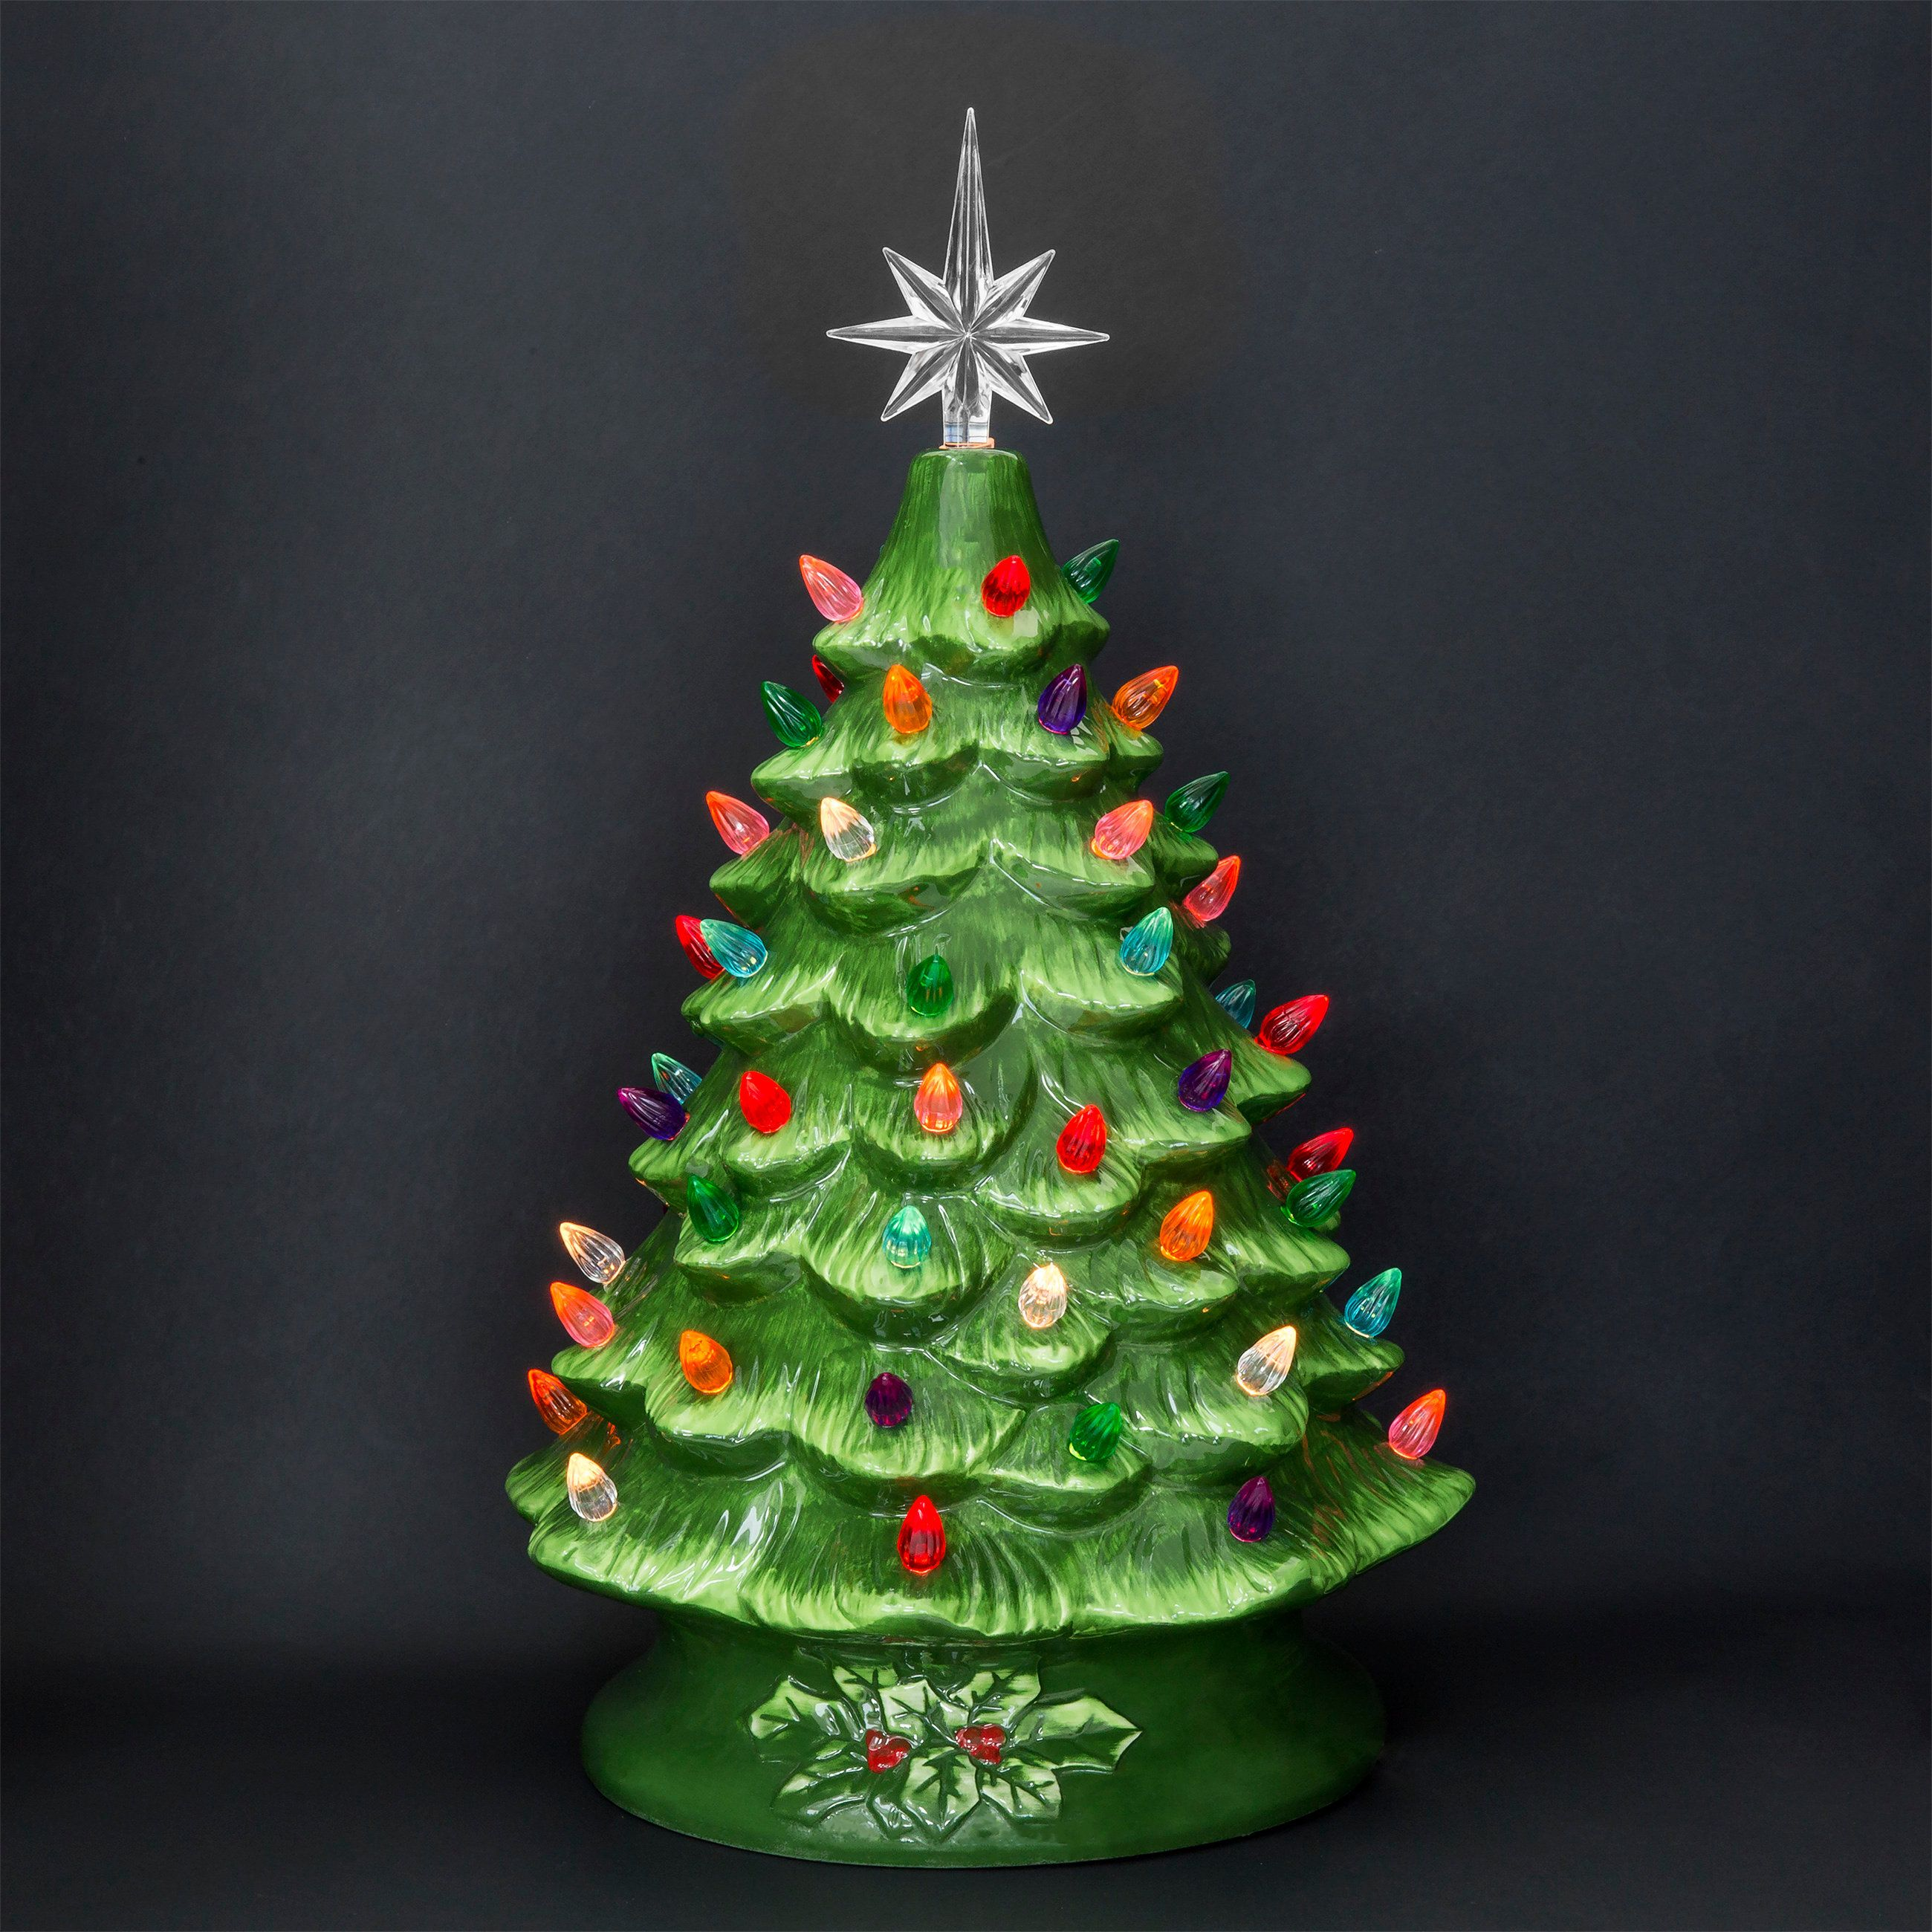 "Ceramic Tabletop Christmas Tree With Lights Mesmerizing Best Choice Products 15"" Prelit Ceramic Tabletop Christmas Tree W Design Ideas"